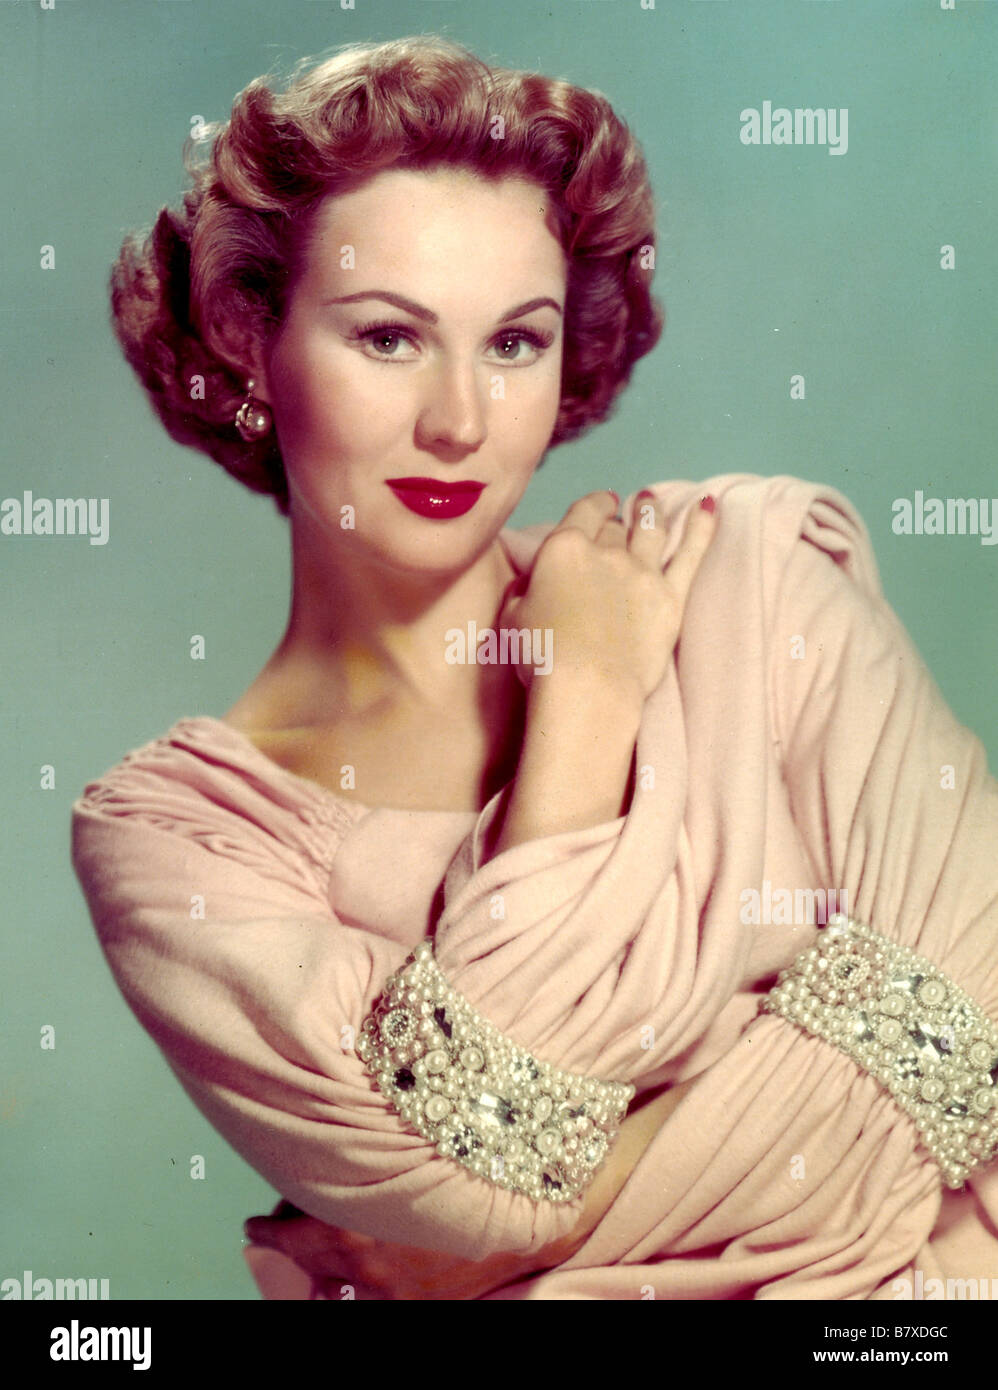 Virginia Mayo Virginia Mayo new foto